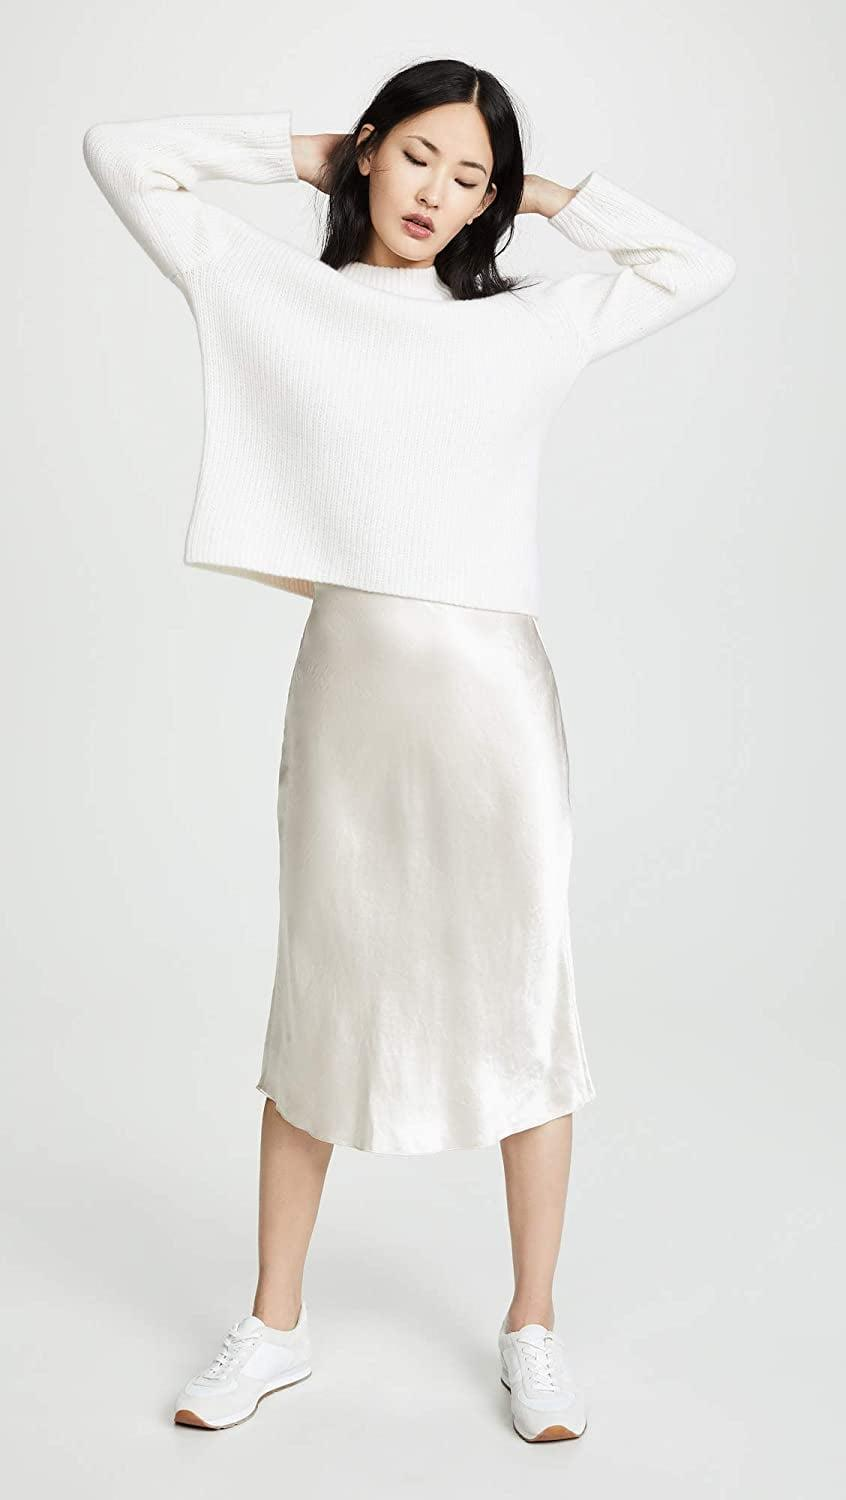 <p>If you gravitate towards neutral colors or shades in the white family, this simple yet elegant <span>Vince Slip Skirt</span> ($265-$285) will speak to your minimalist style. It's also easy to mix and match with anything.</p>